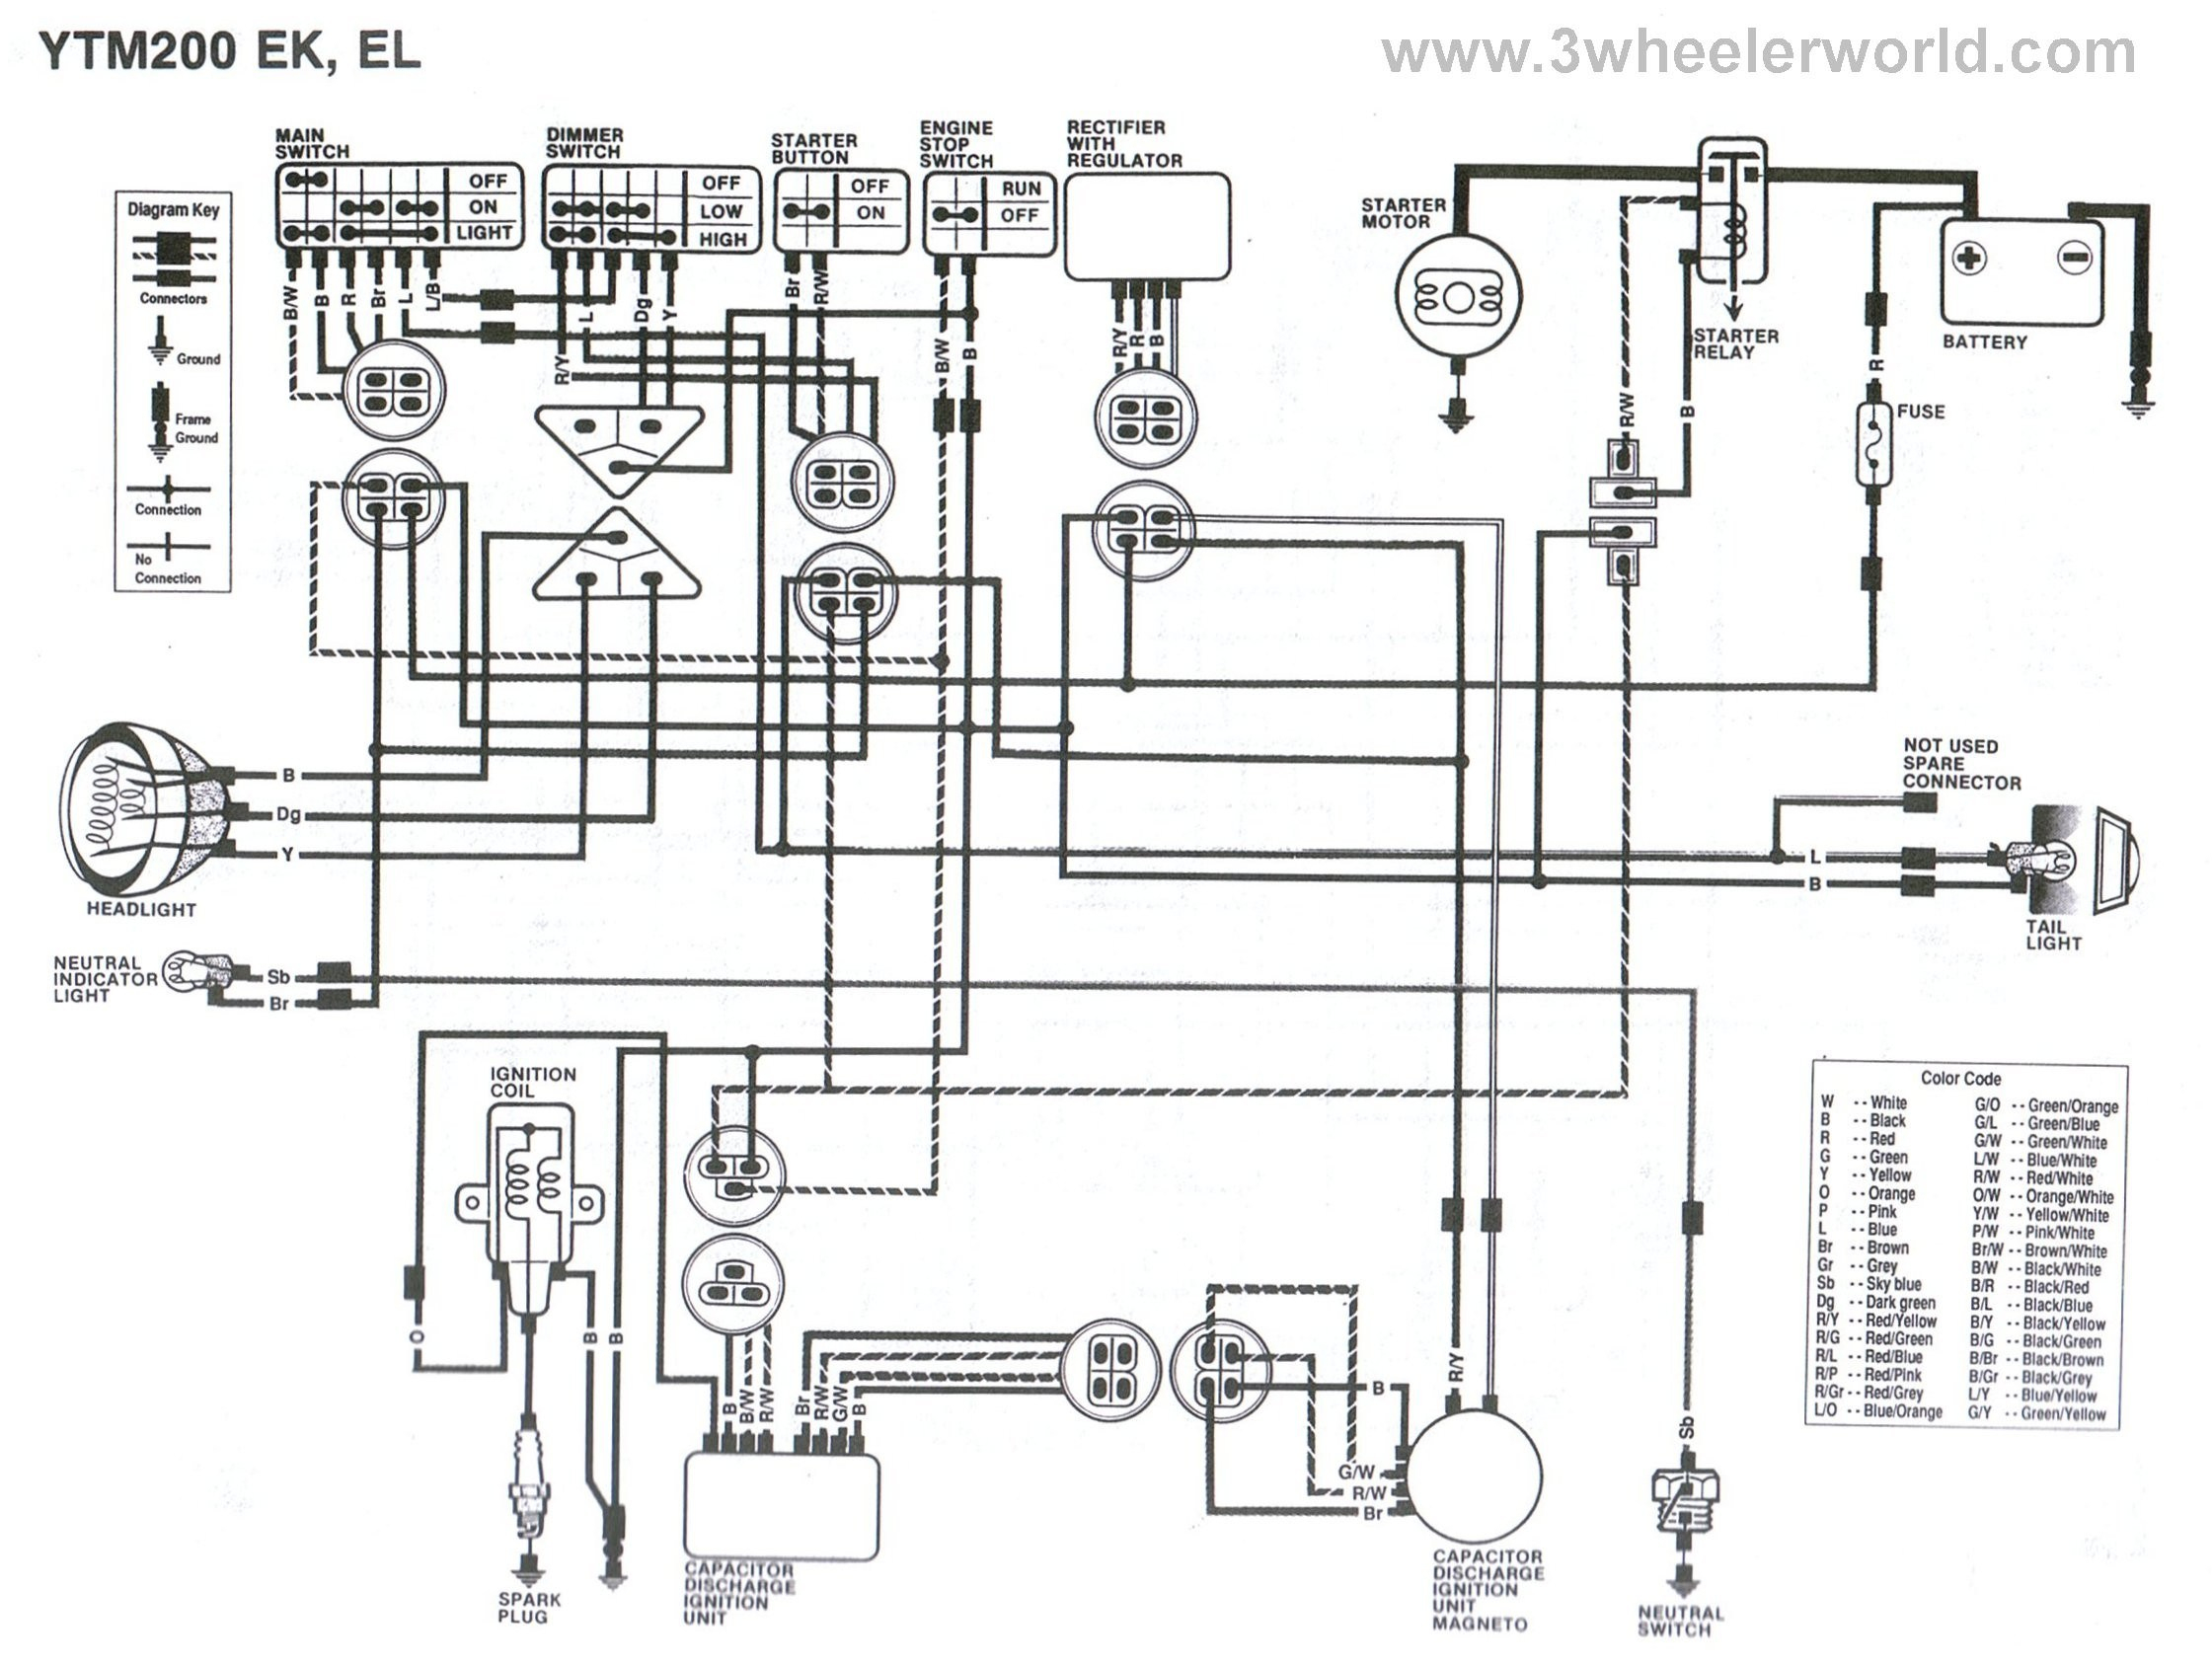 Load Trail Wiring Diagram - Good Place To Get Wiring Diagram • - Load Trail Trailer Wiring Diagram